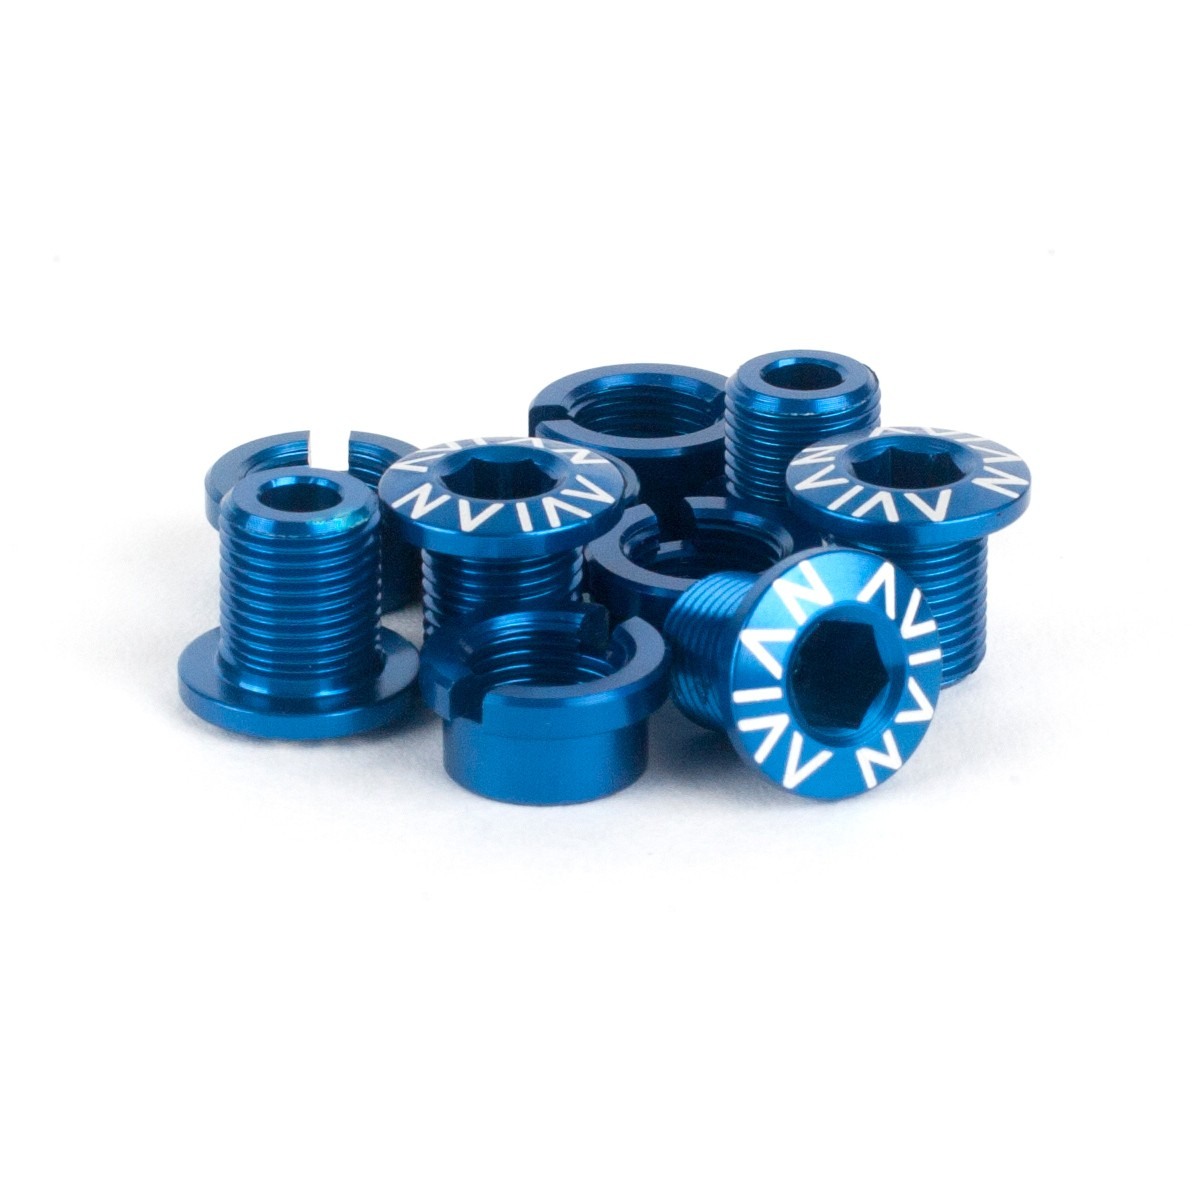 AVIAN CHAINRING ALLOY BOLTS